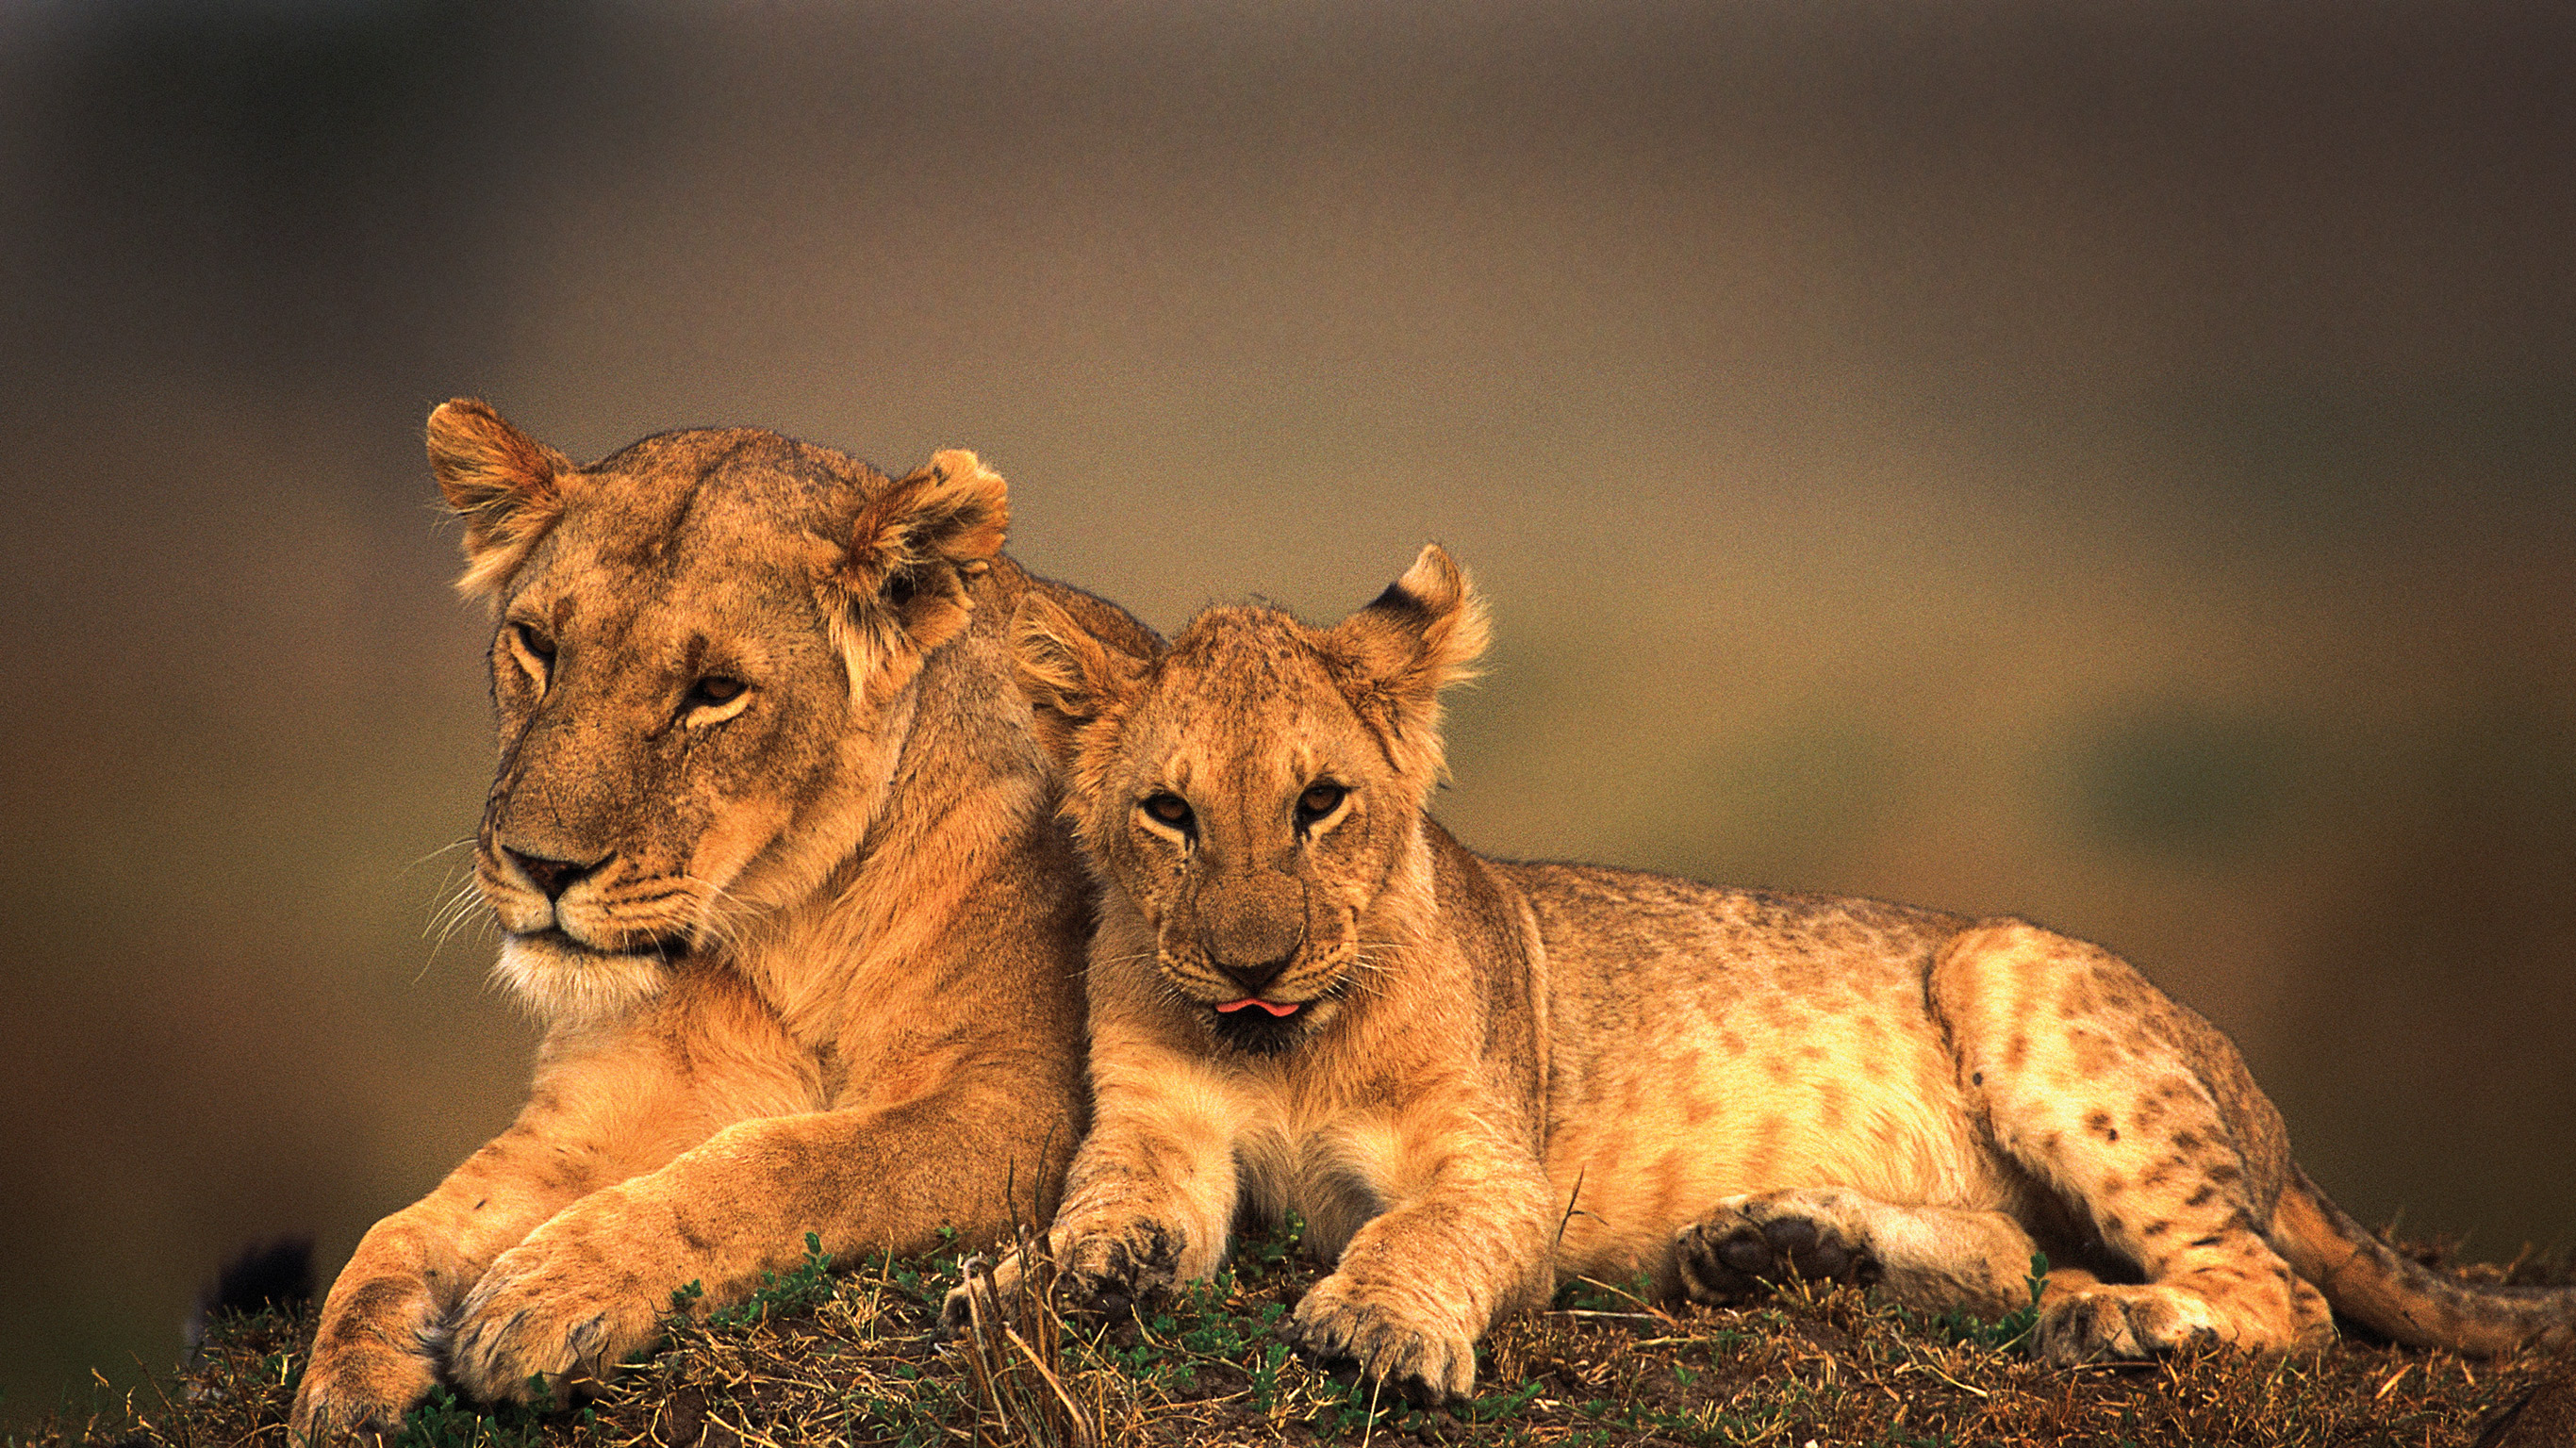 Going Beyond the Safaris: Travel Experts Open Up About Kenya